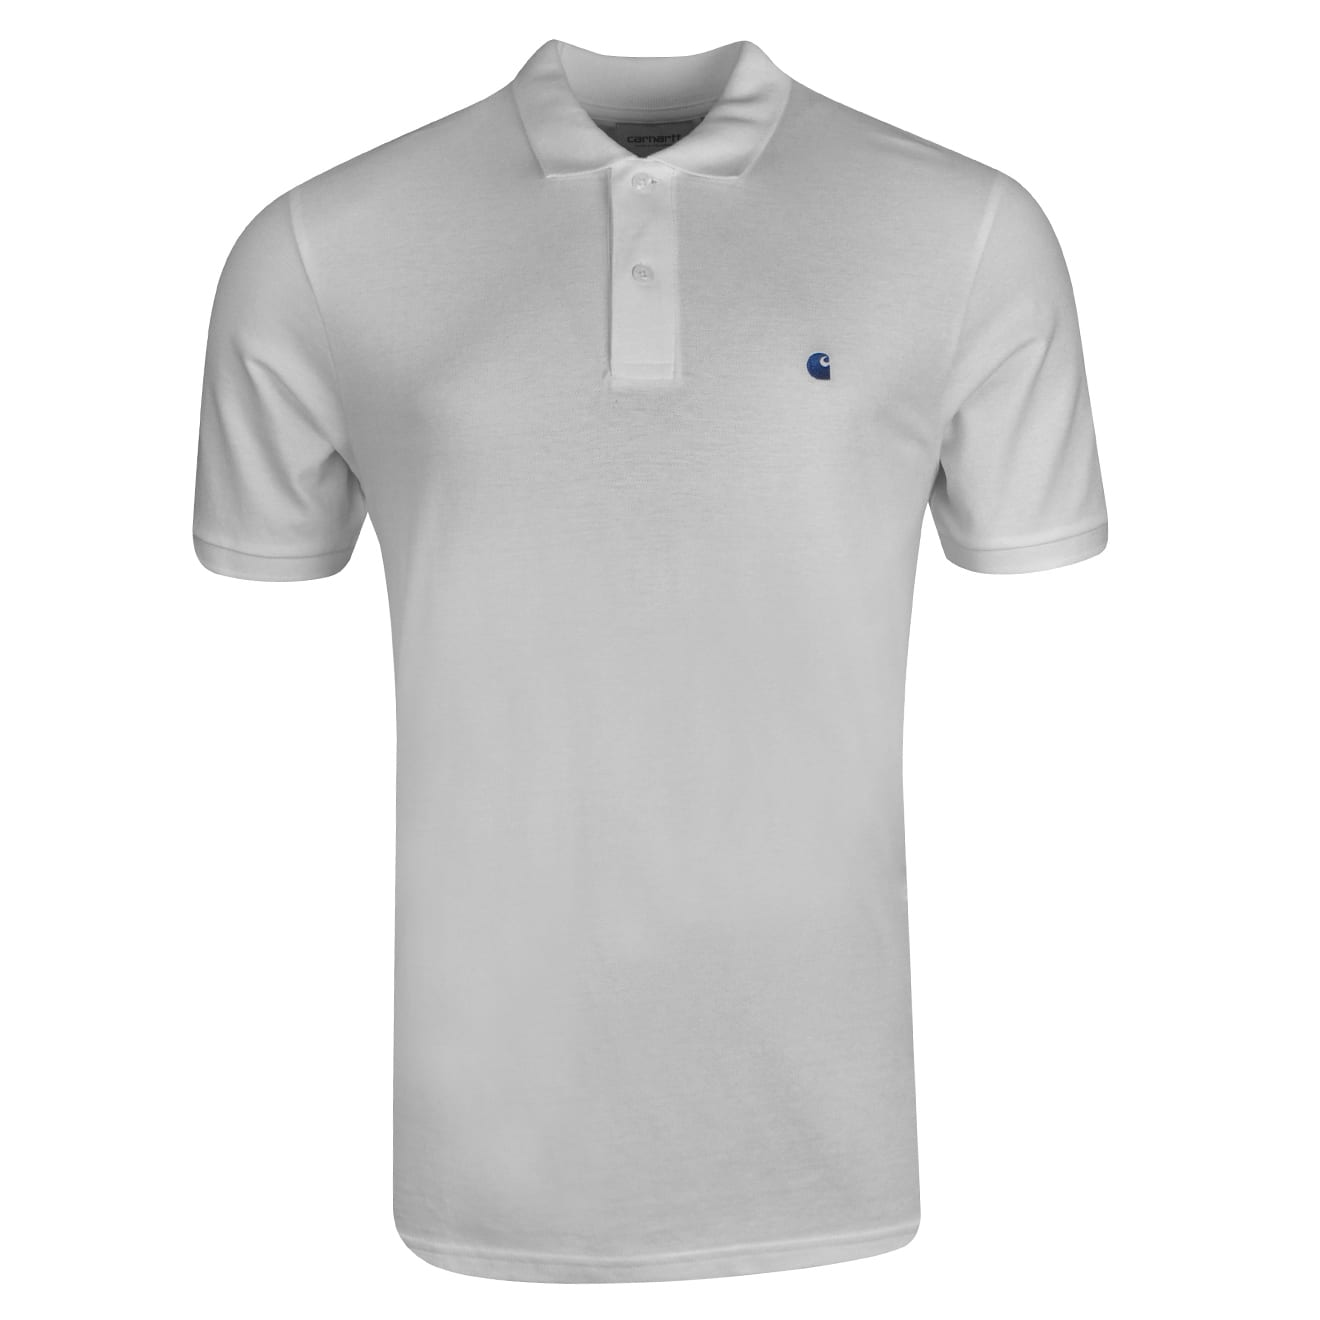 Carhartt madison polo white blue